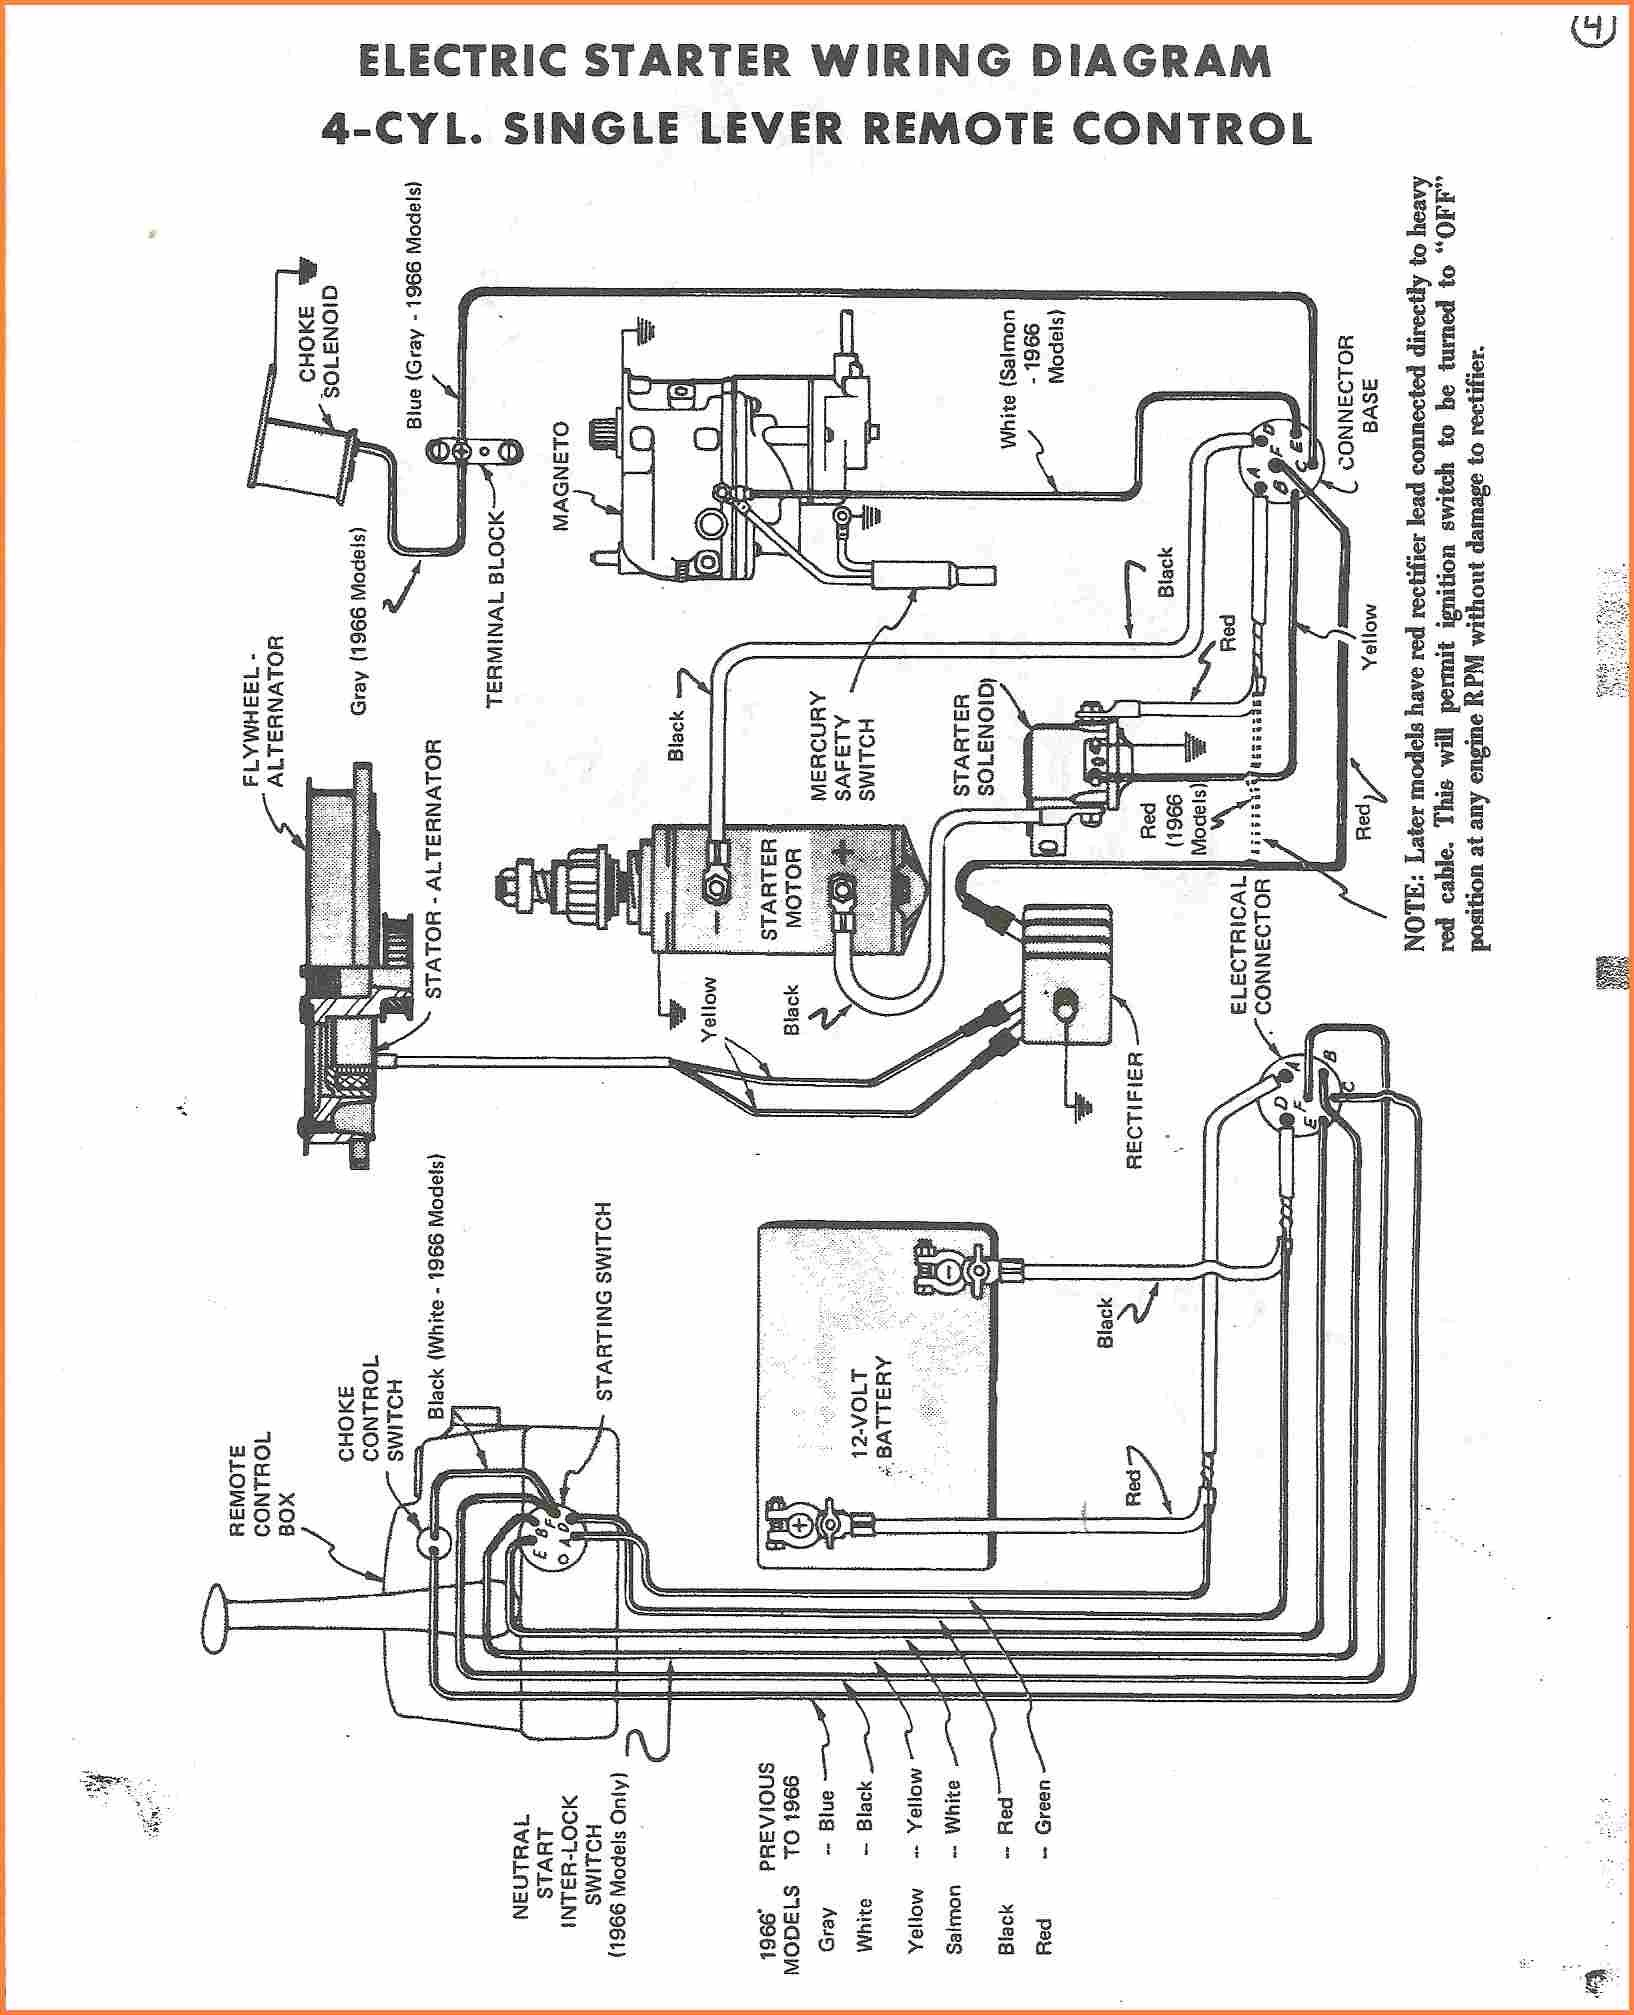 Mercury Outboard Ignition Switch Wiring Diagram Mercury Outboard Wiring Diagrams Mastertech Marin Beauteous Ignition Of Mercury Outboard Ignition Switch Wiring Diagram